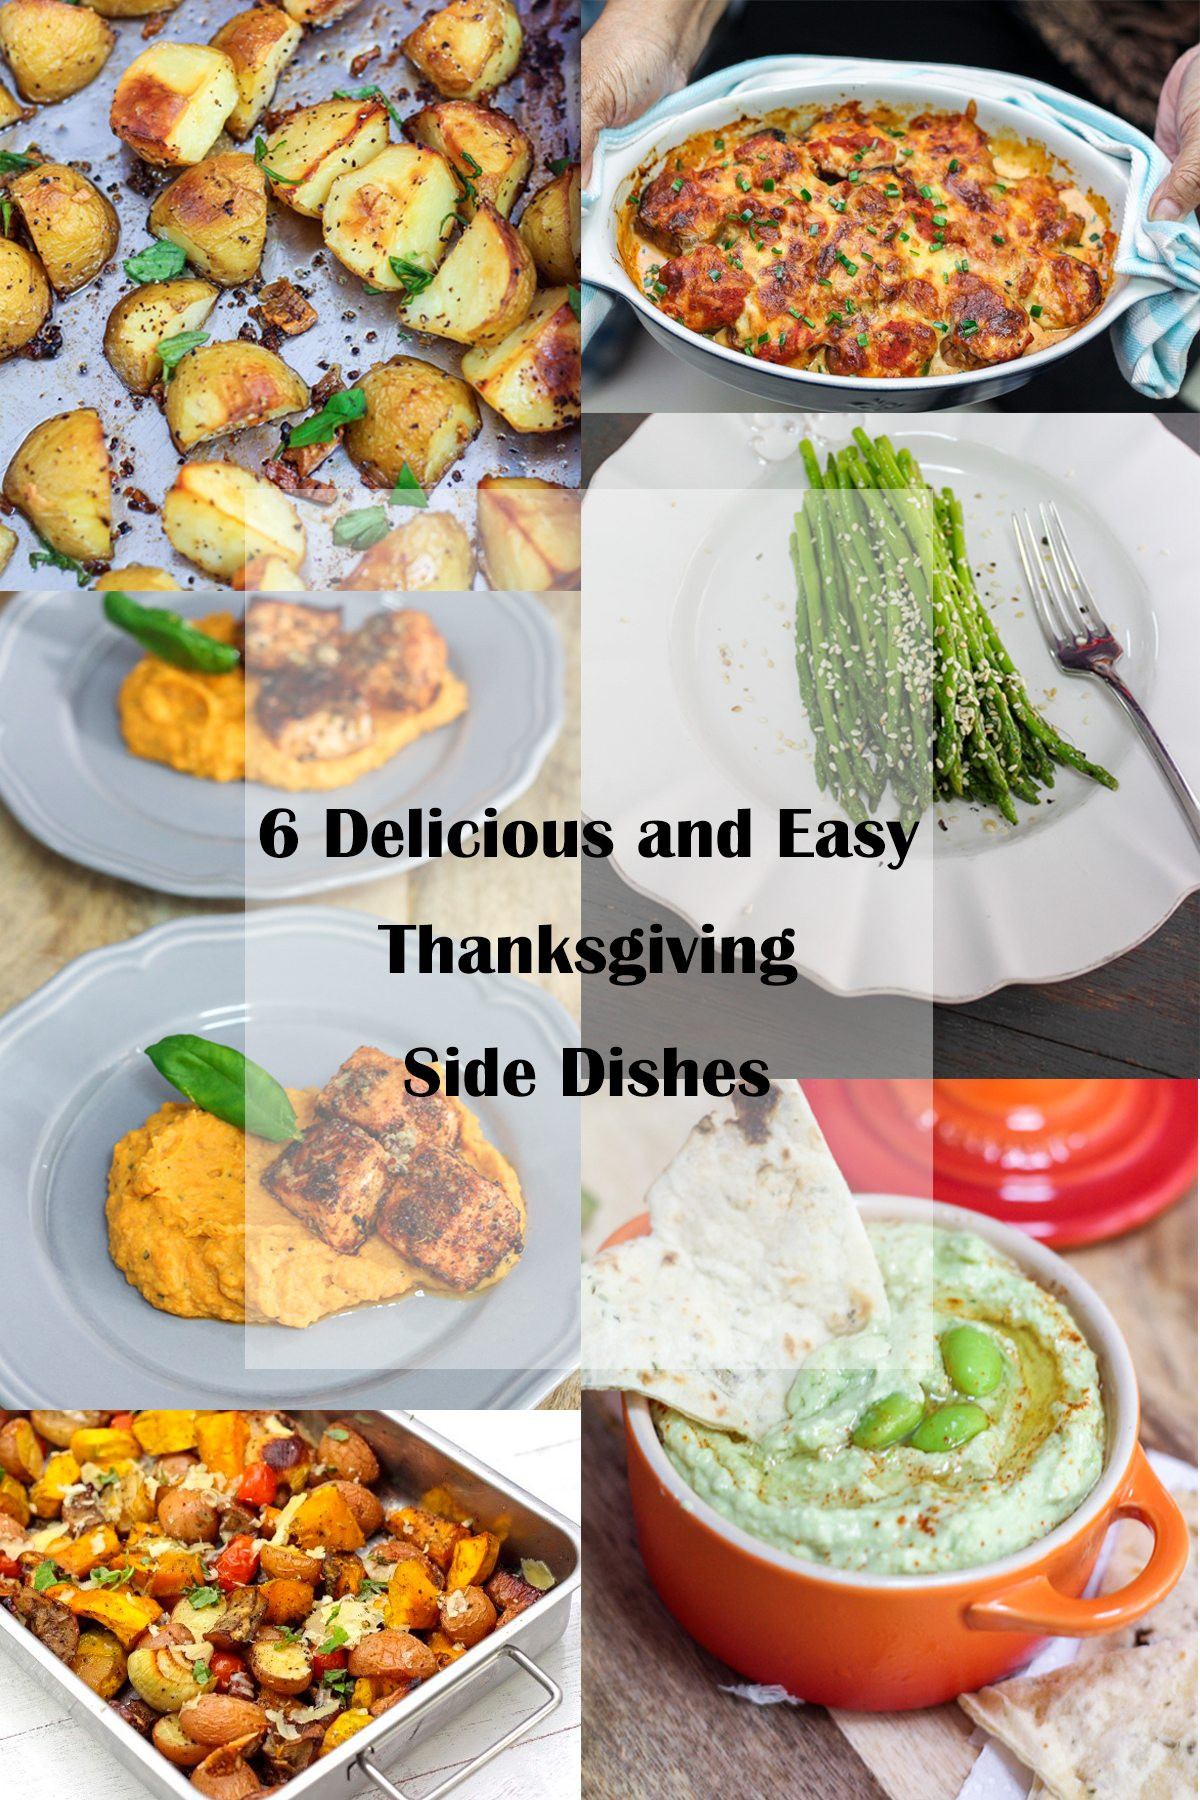 Easy Side Dishes For Thanksgiving  6 Delicious and Easy Thanksgiving Side Dishes